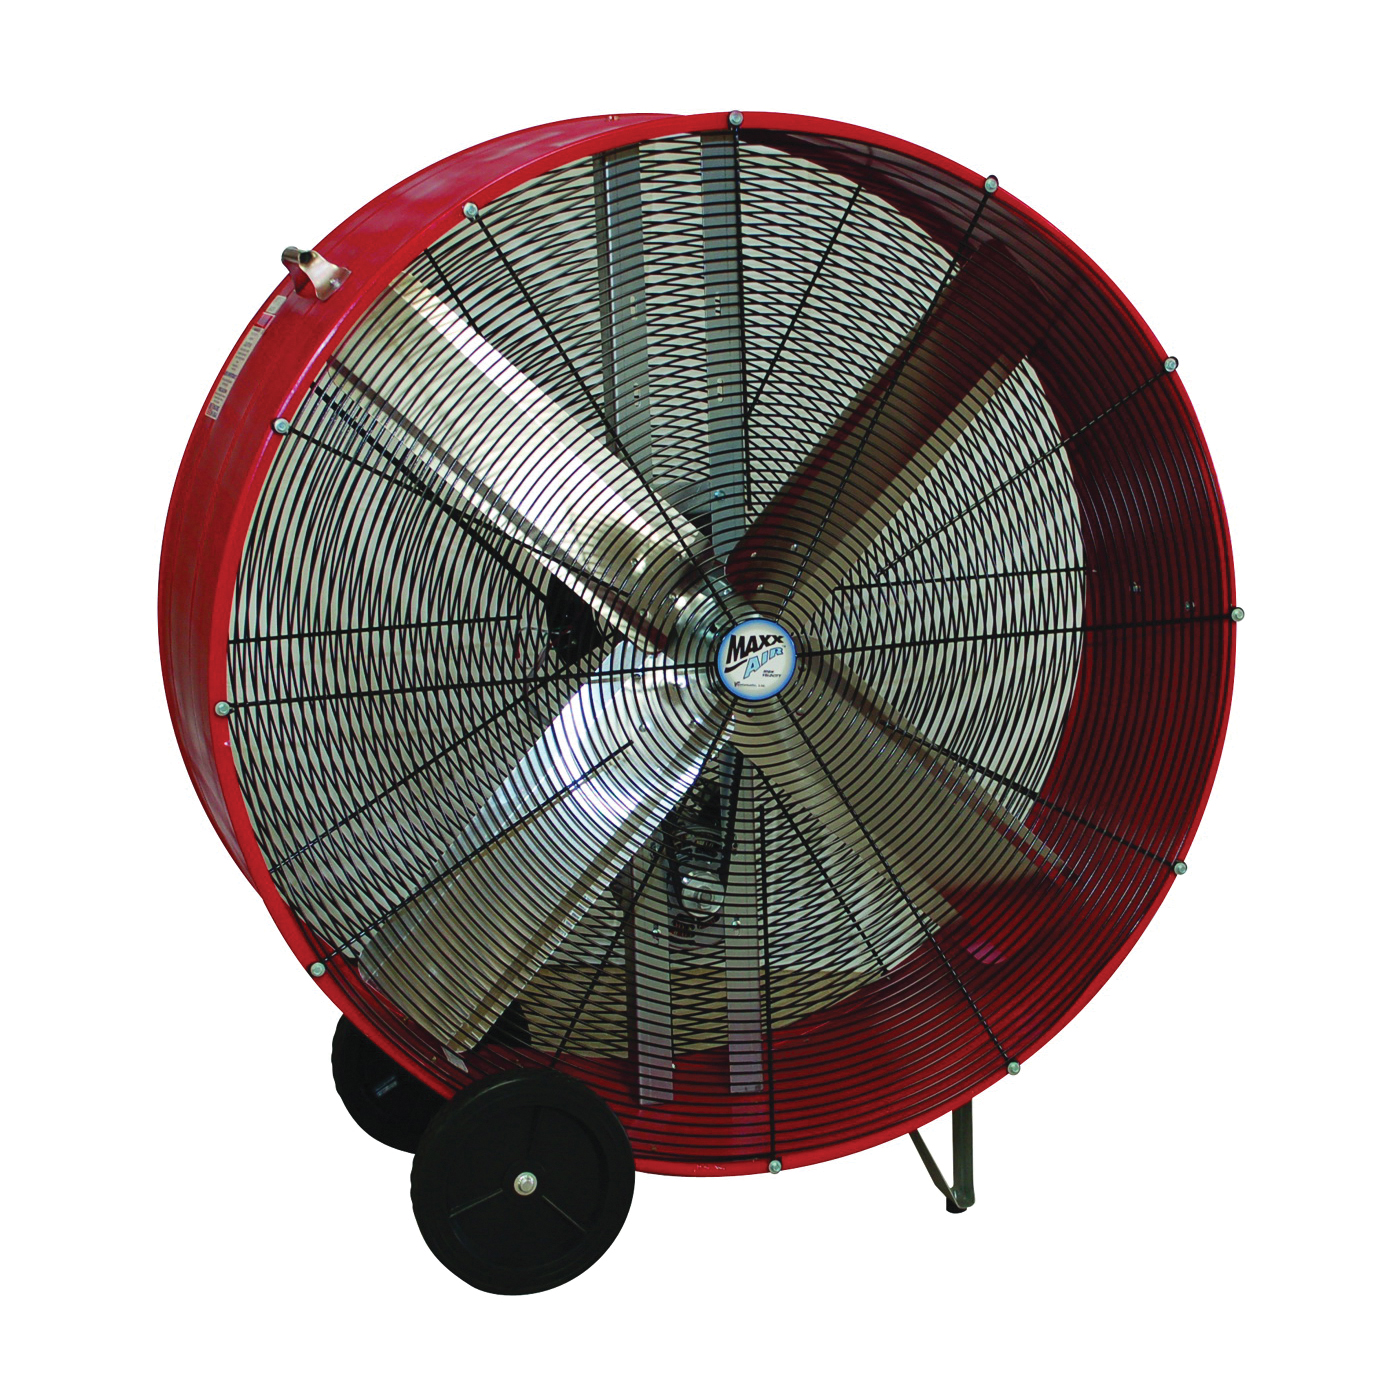 Picture of MaxxAir BF48BDRED/GLV Portable Barrel Fan, 120 V, 2-Speed, 10,100 to 18,000 cfm Air, Red